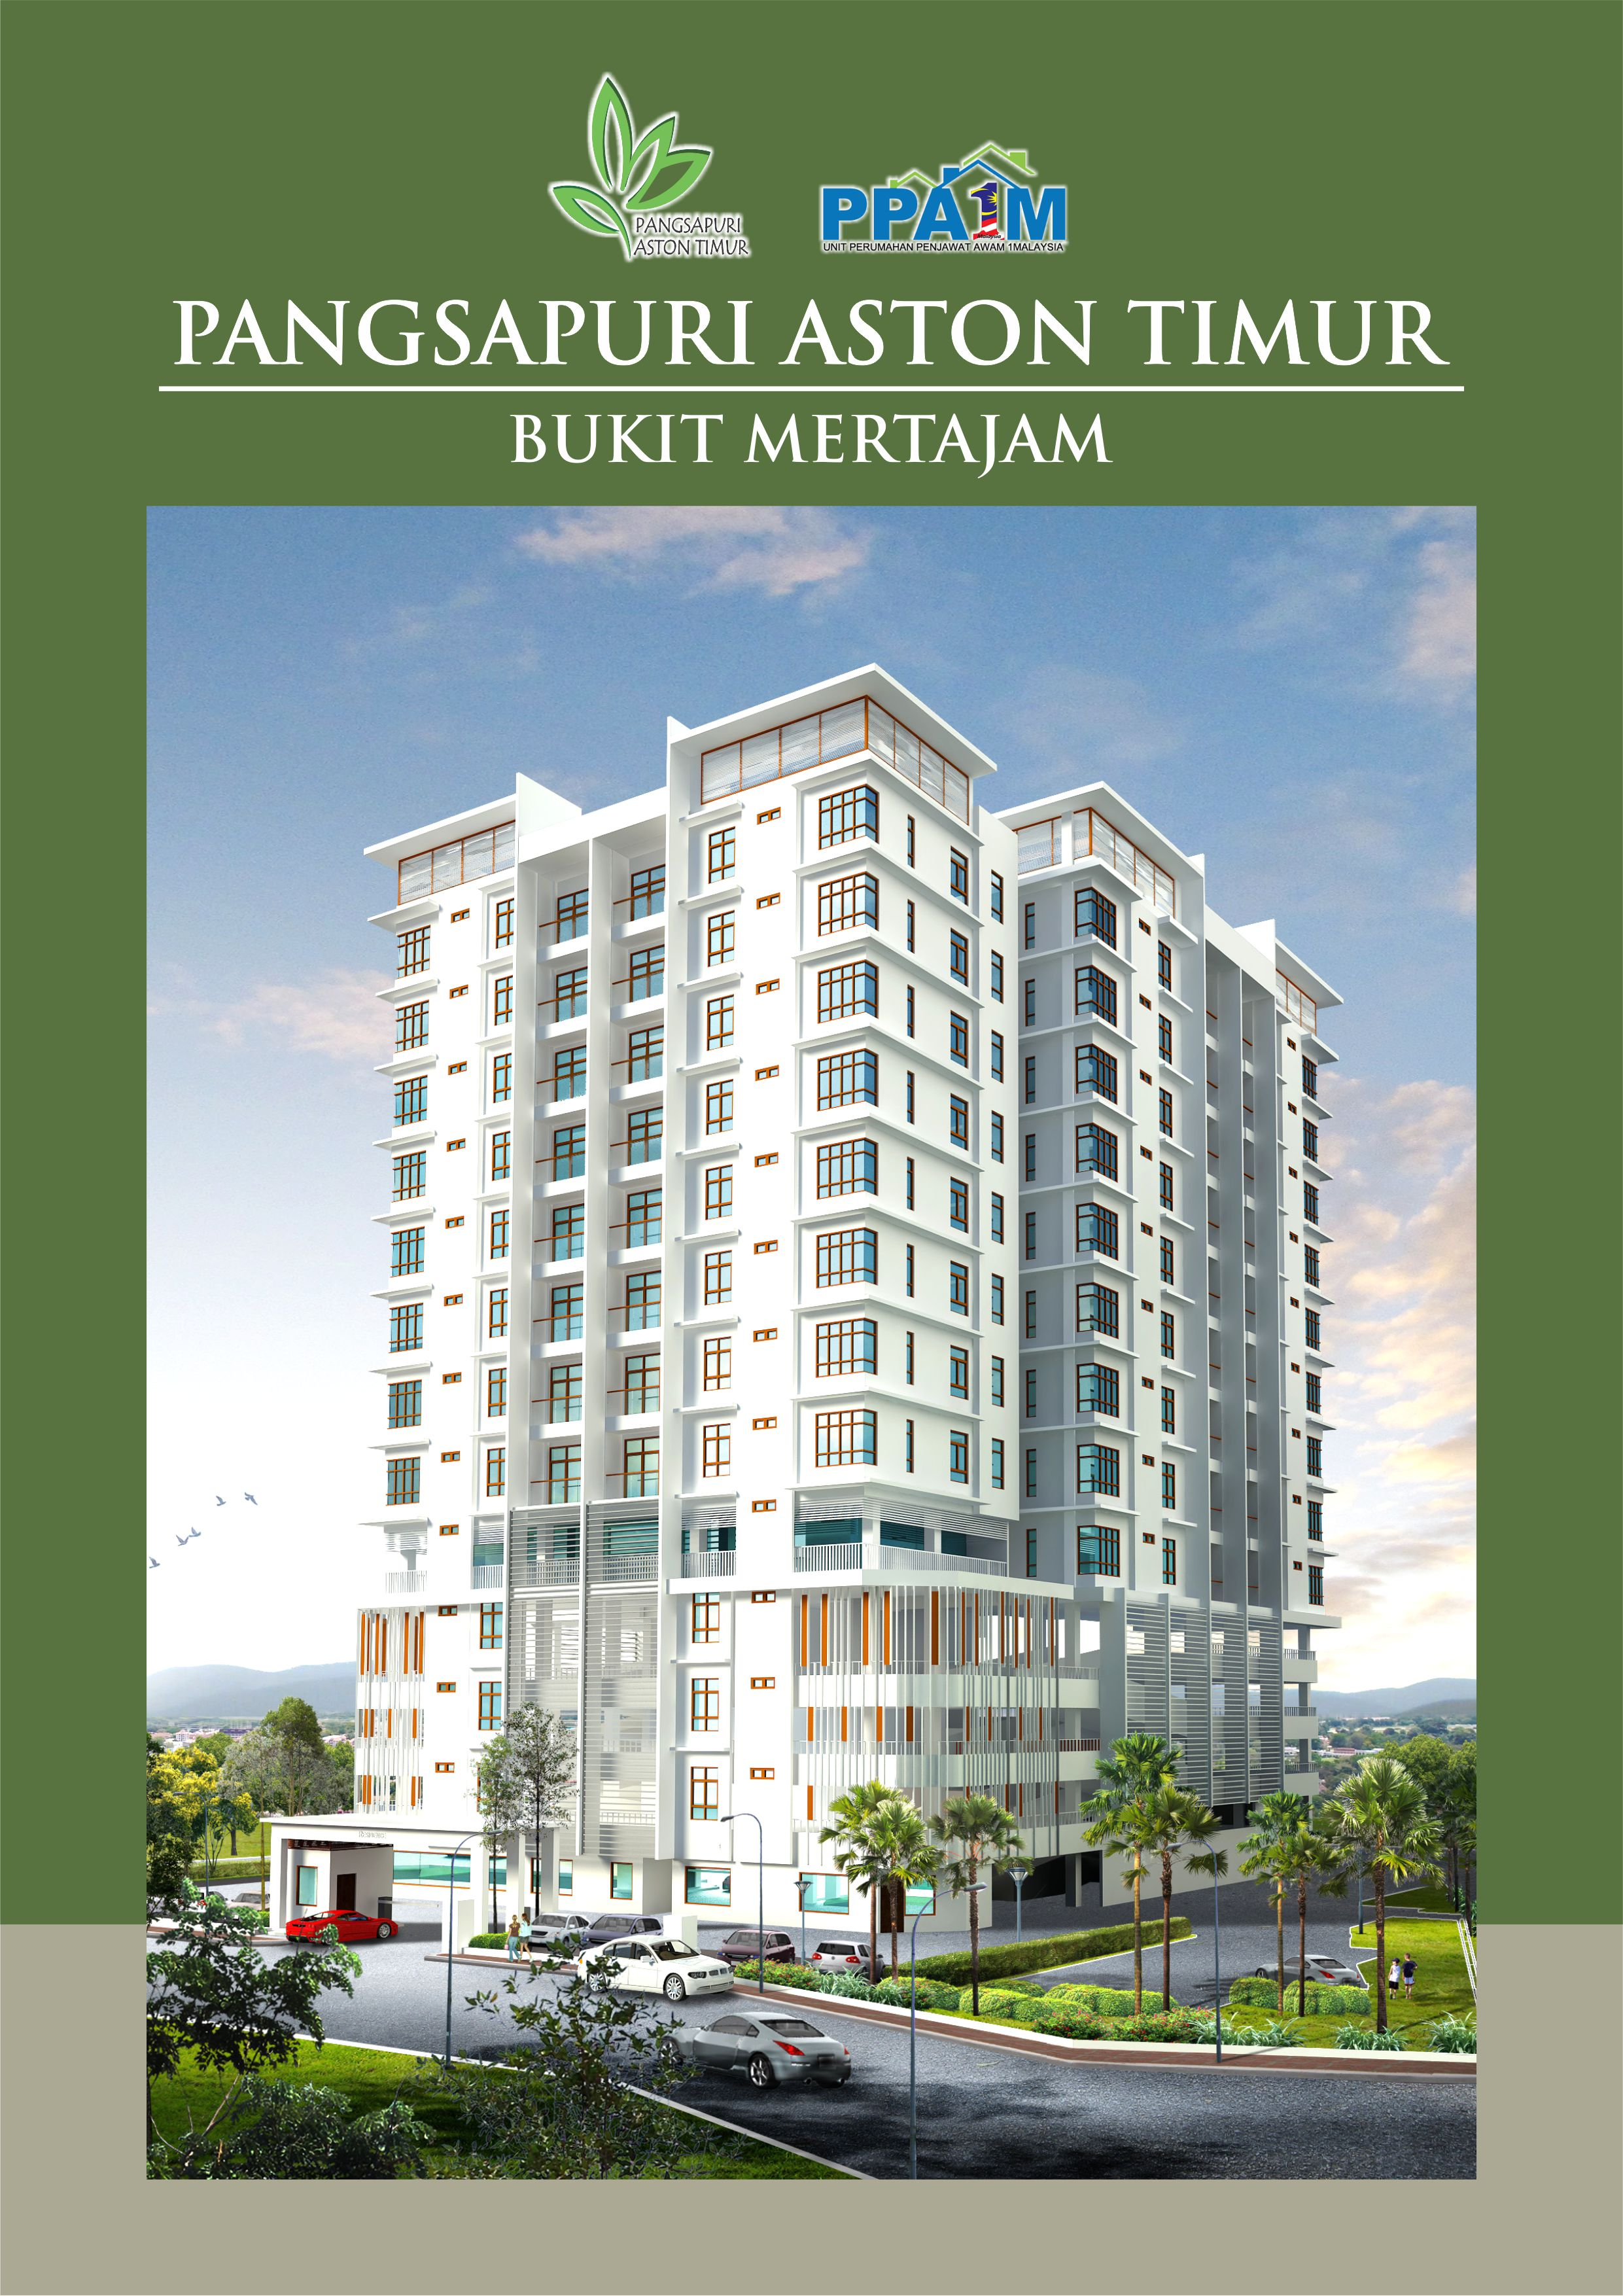 Incredible Price for Goverment Officers RM280,800 for 1,200 sqft!  Low Density at 52 units only